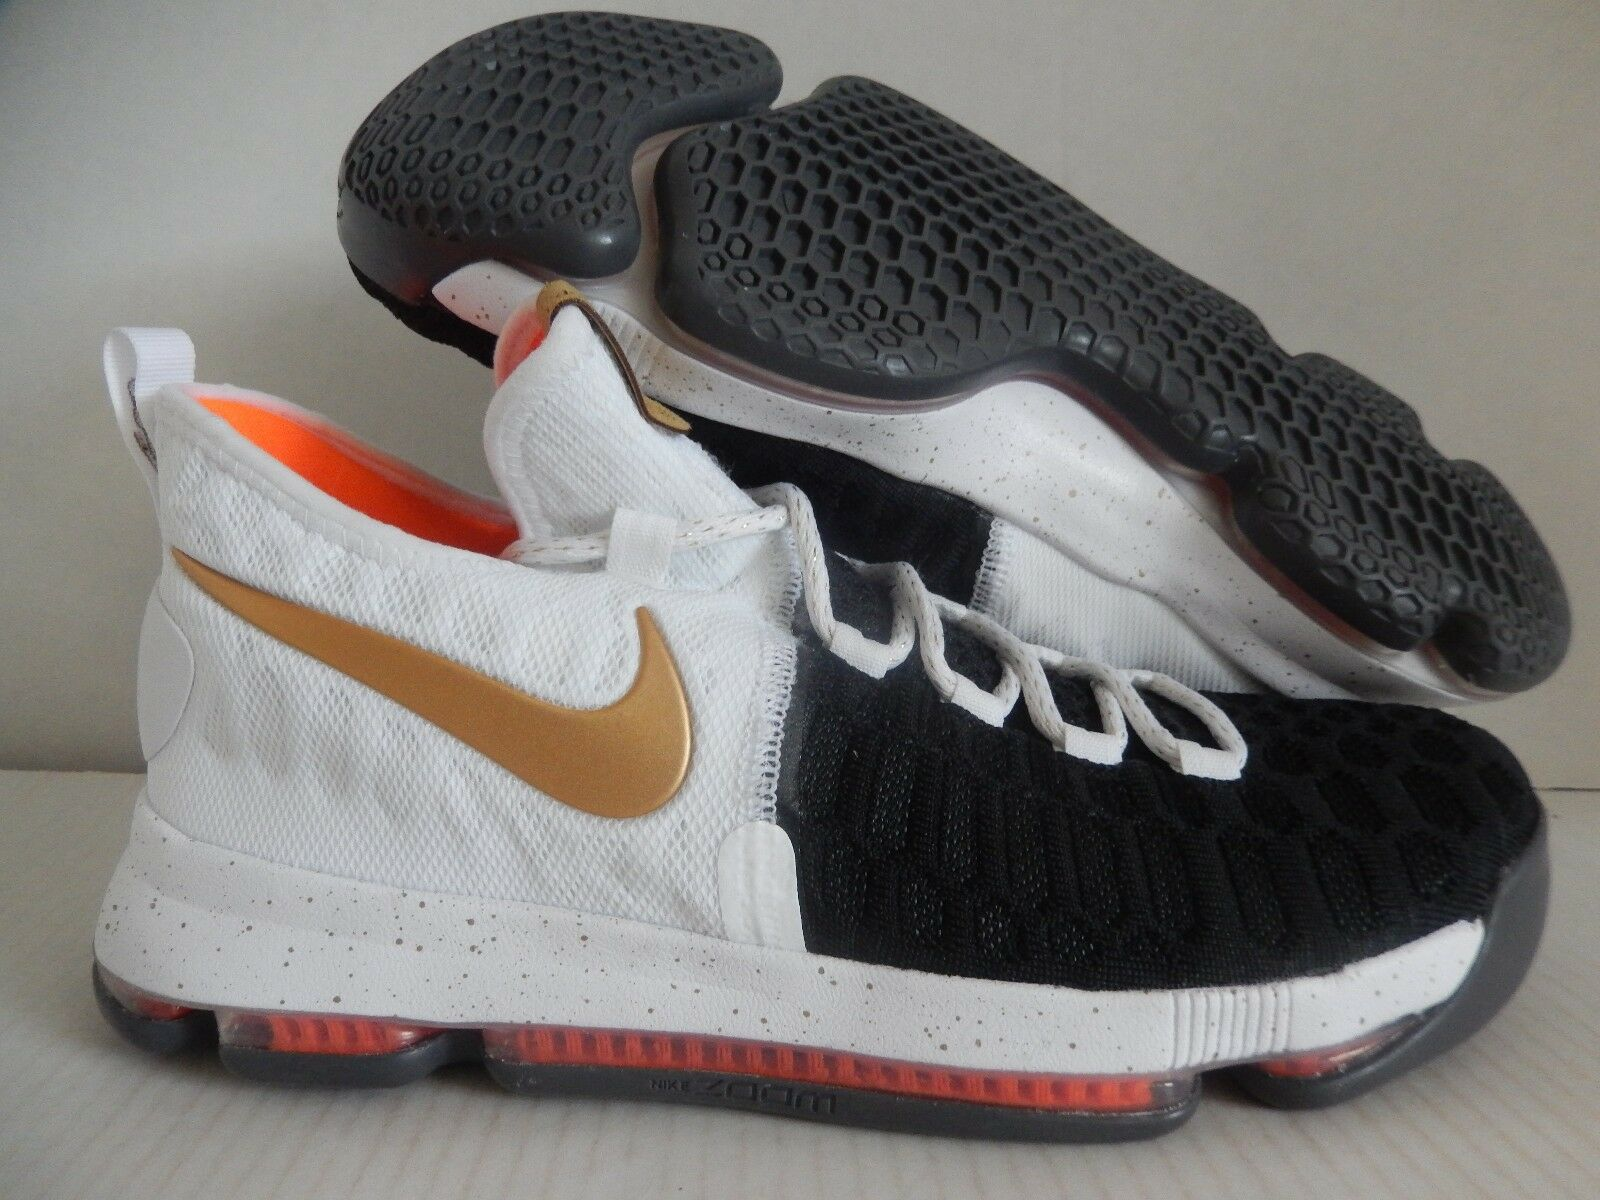 Nike kd 9 id nero-white-gold-orange [863695-991] sz 11 [863695-991] nero-white-gold-orange 1a3b5f